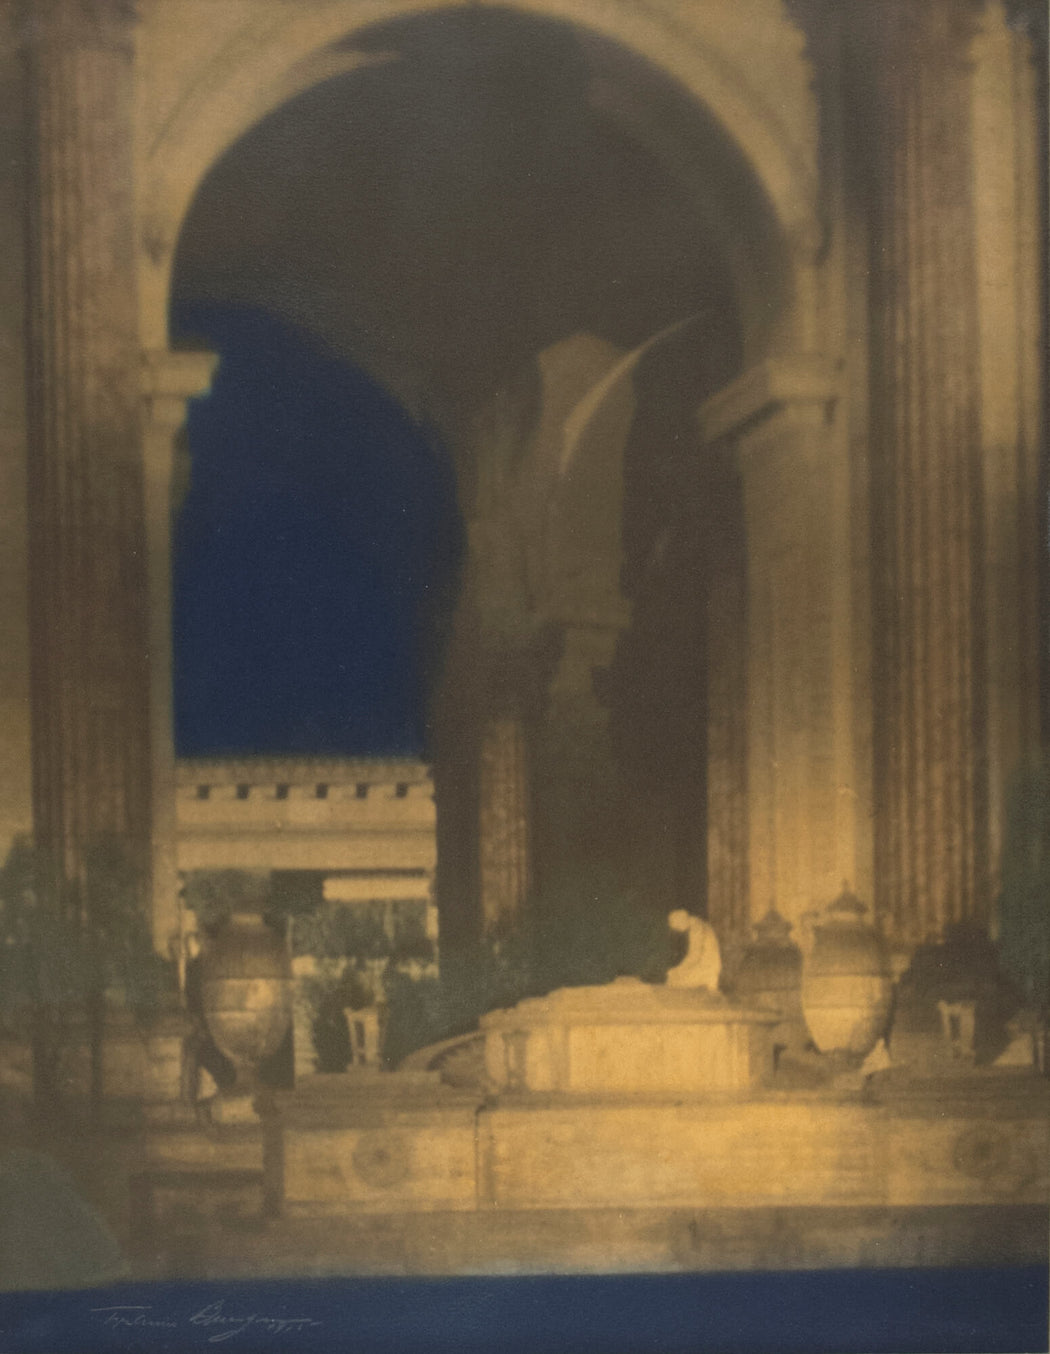 FFOTO-Francis Joseph Bruguière-Altar Before Rotunda, Palace of the Fine Arts, Panama Pacific International Exposition